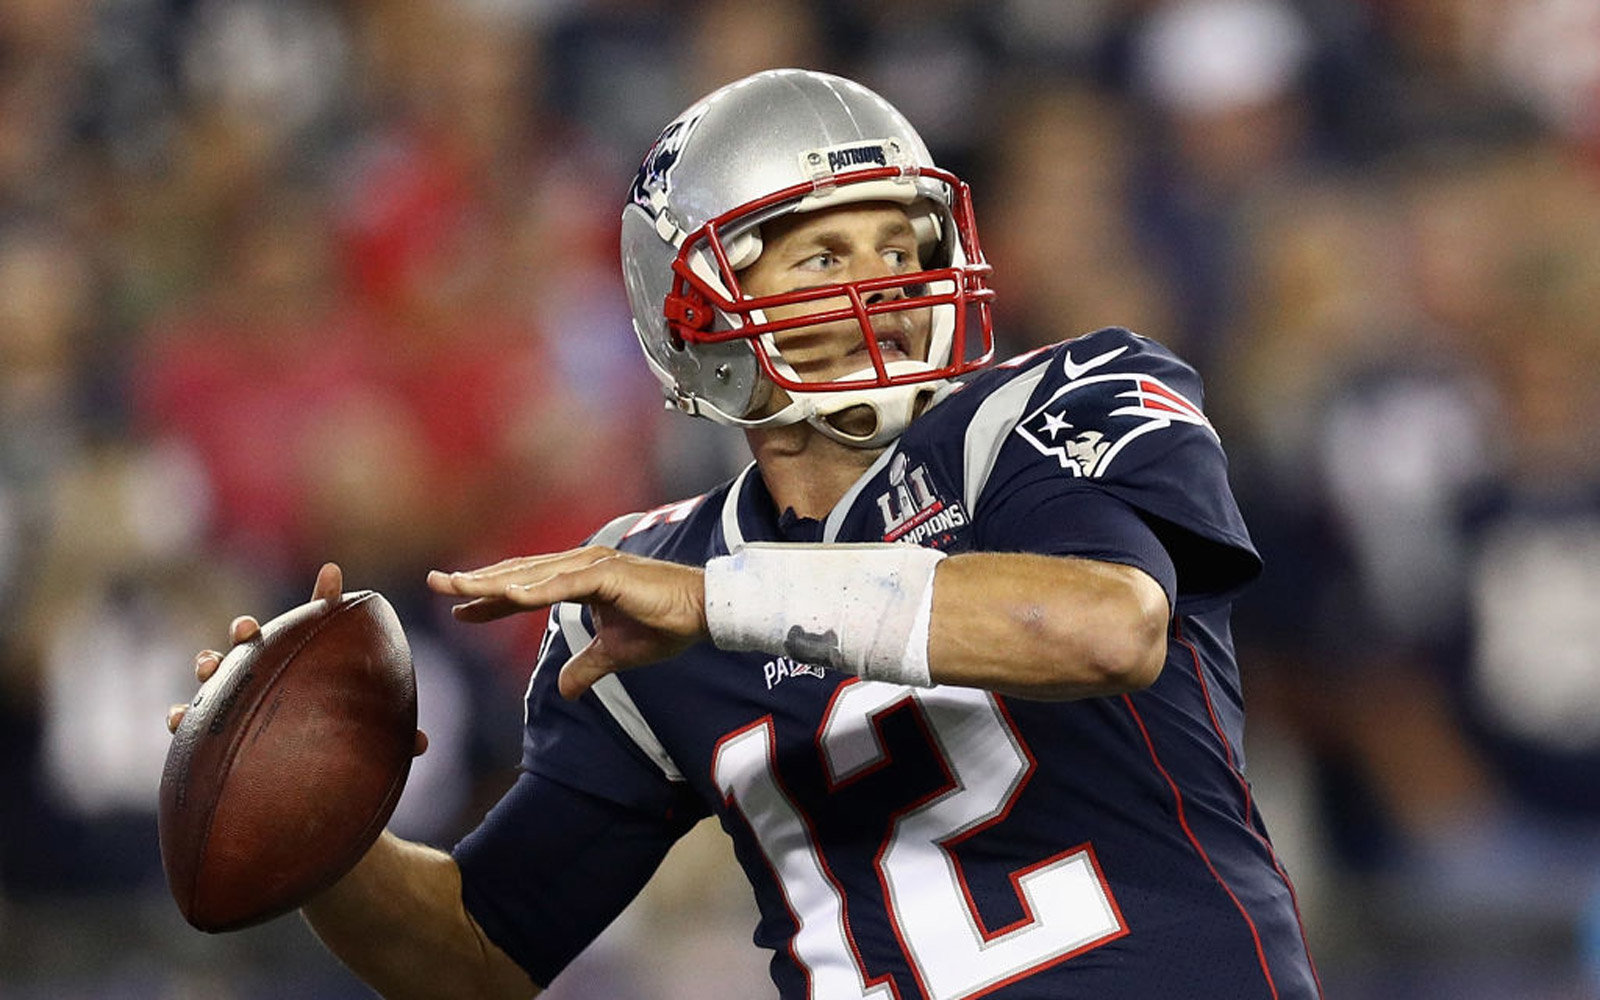 Tom Brady playing football for the Patriots